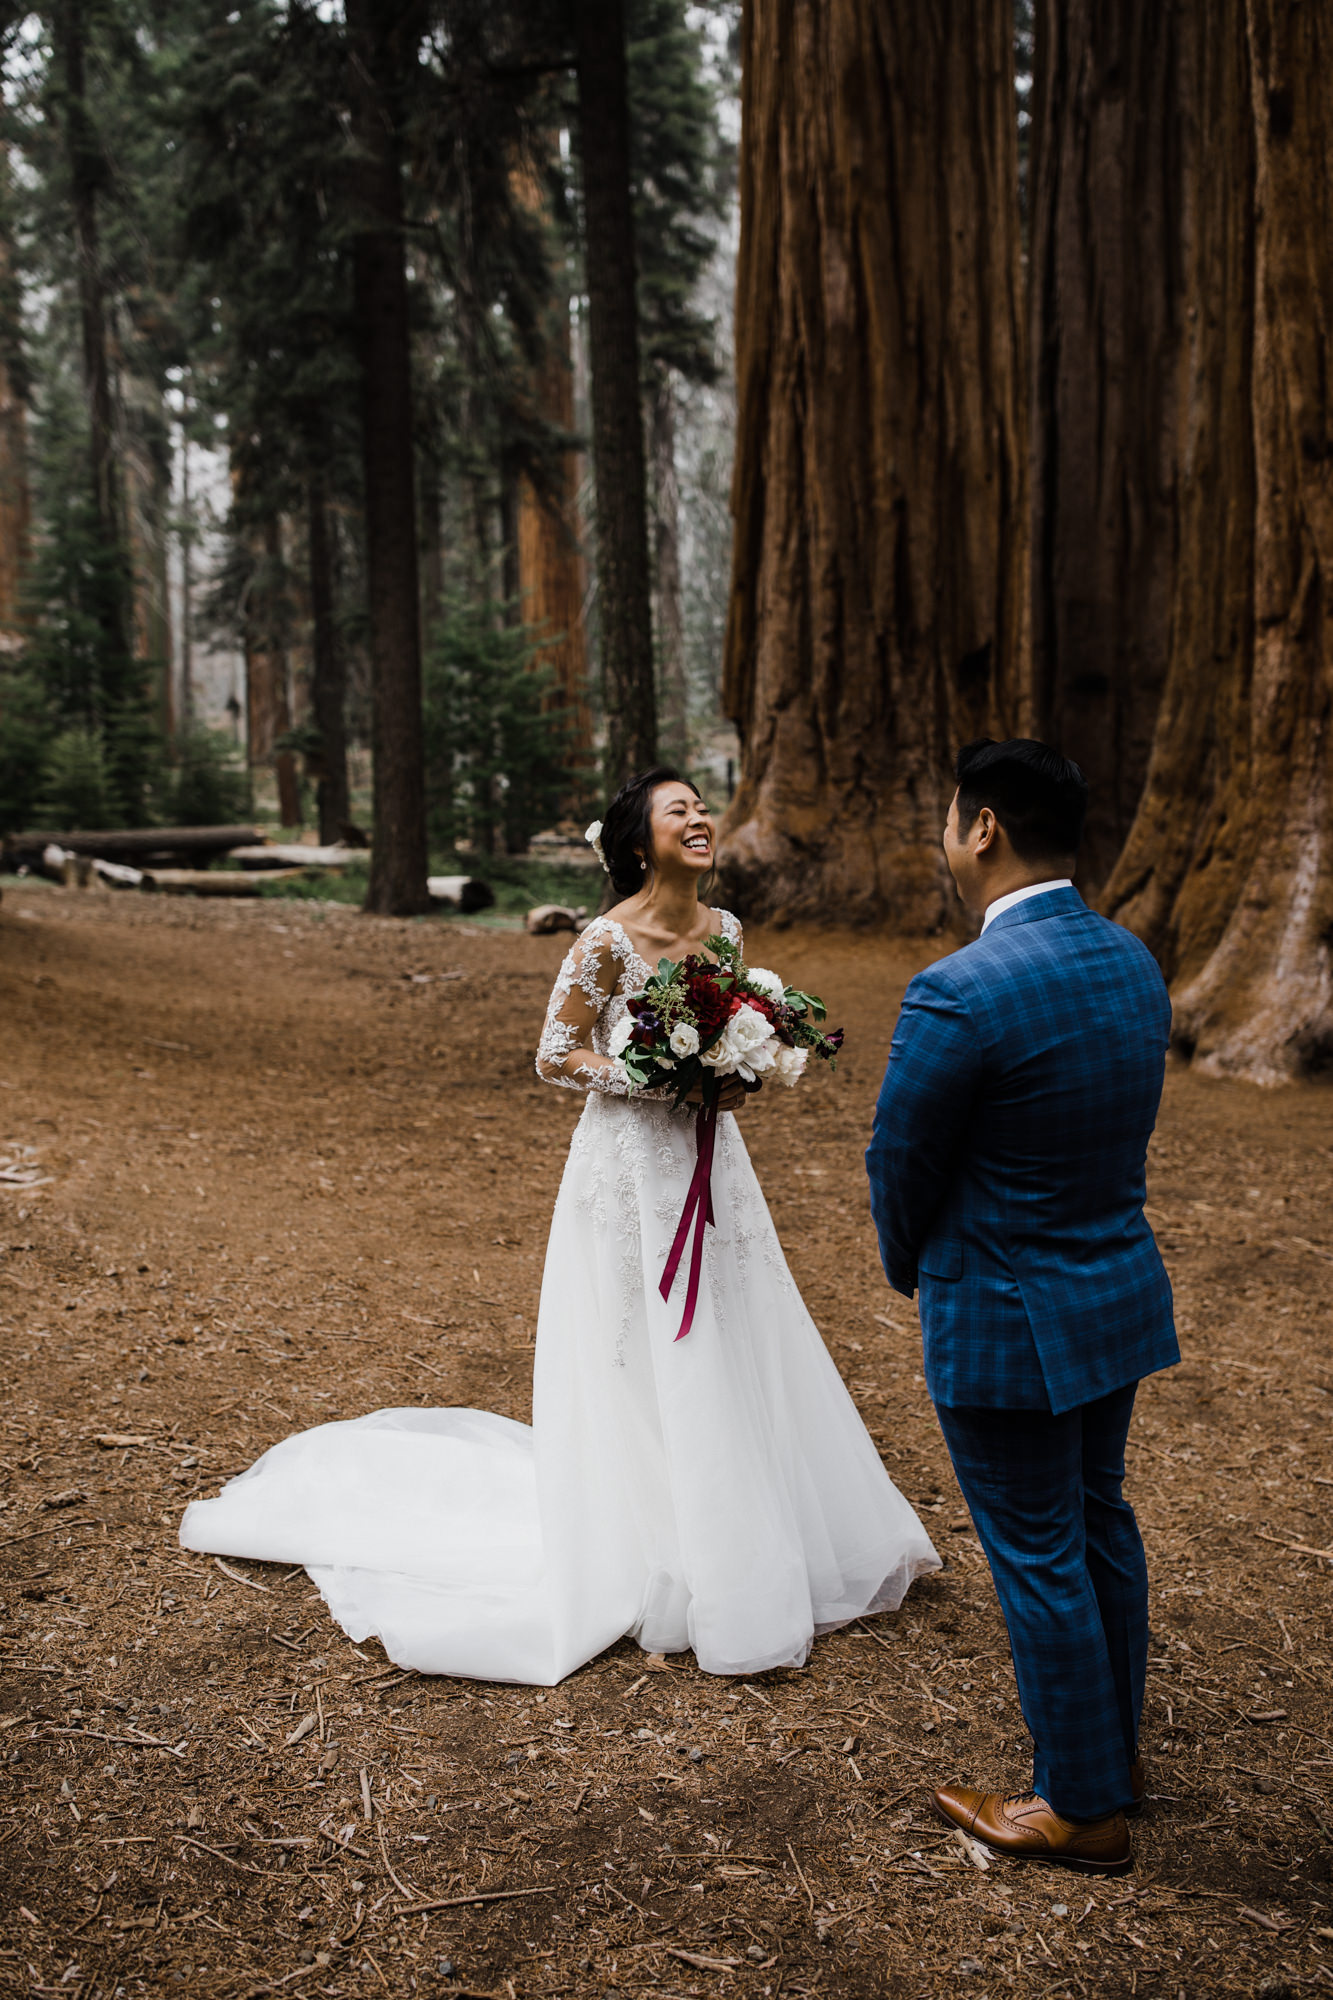 first look in sequoia national park | destination adventure wedding photographers | the hearnes adventure photography | www.thehearnes.com